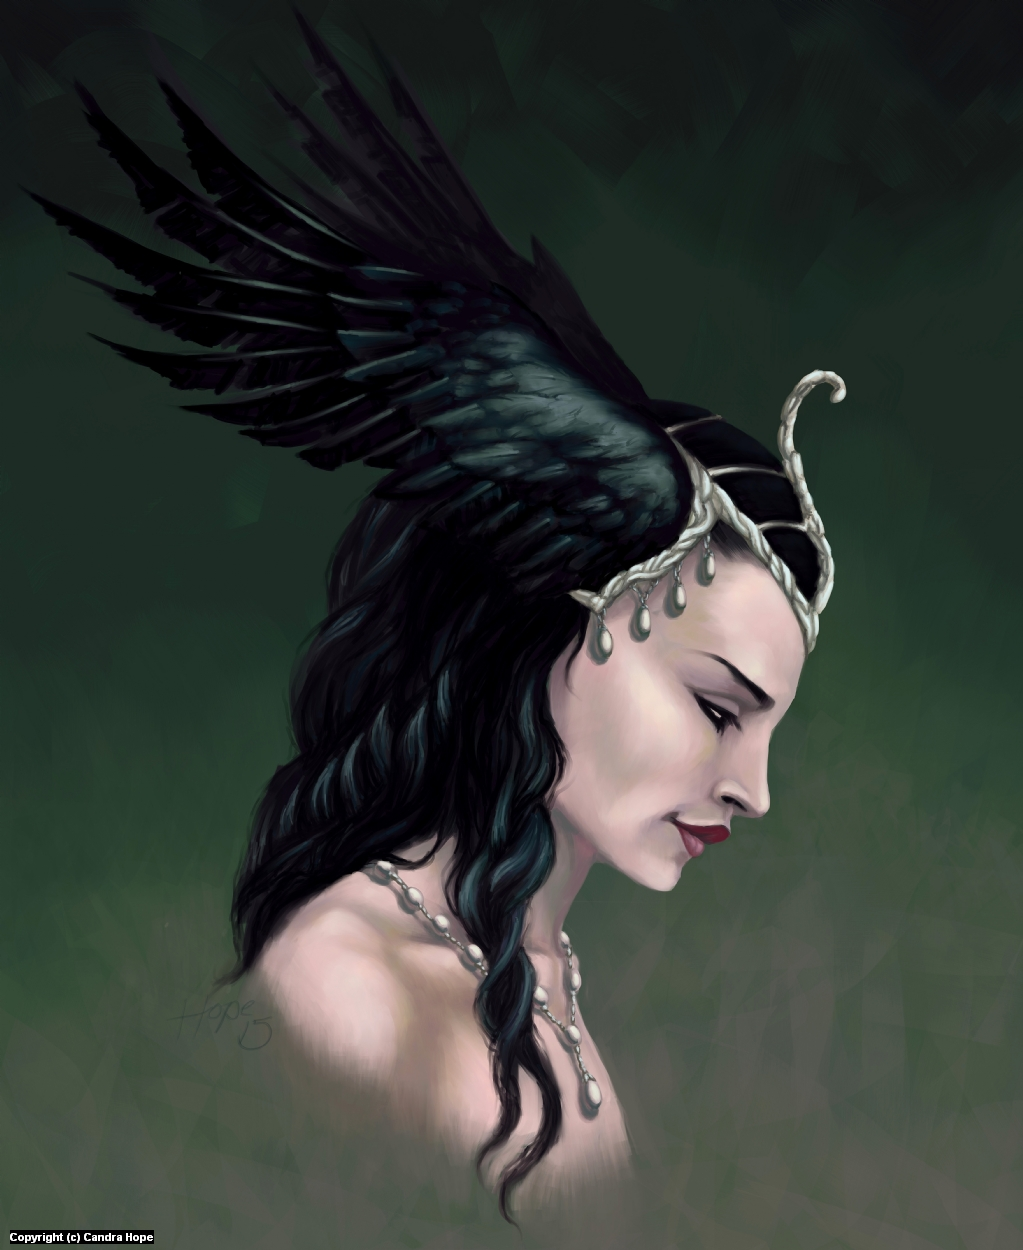 The Raven Princess Artwork by Candra Hope